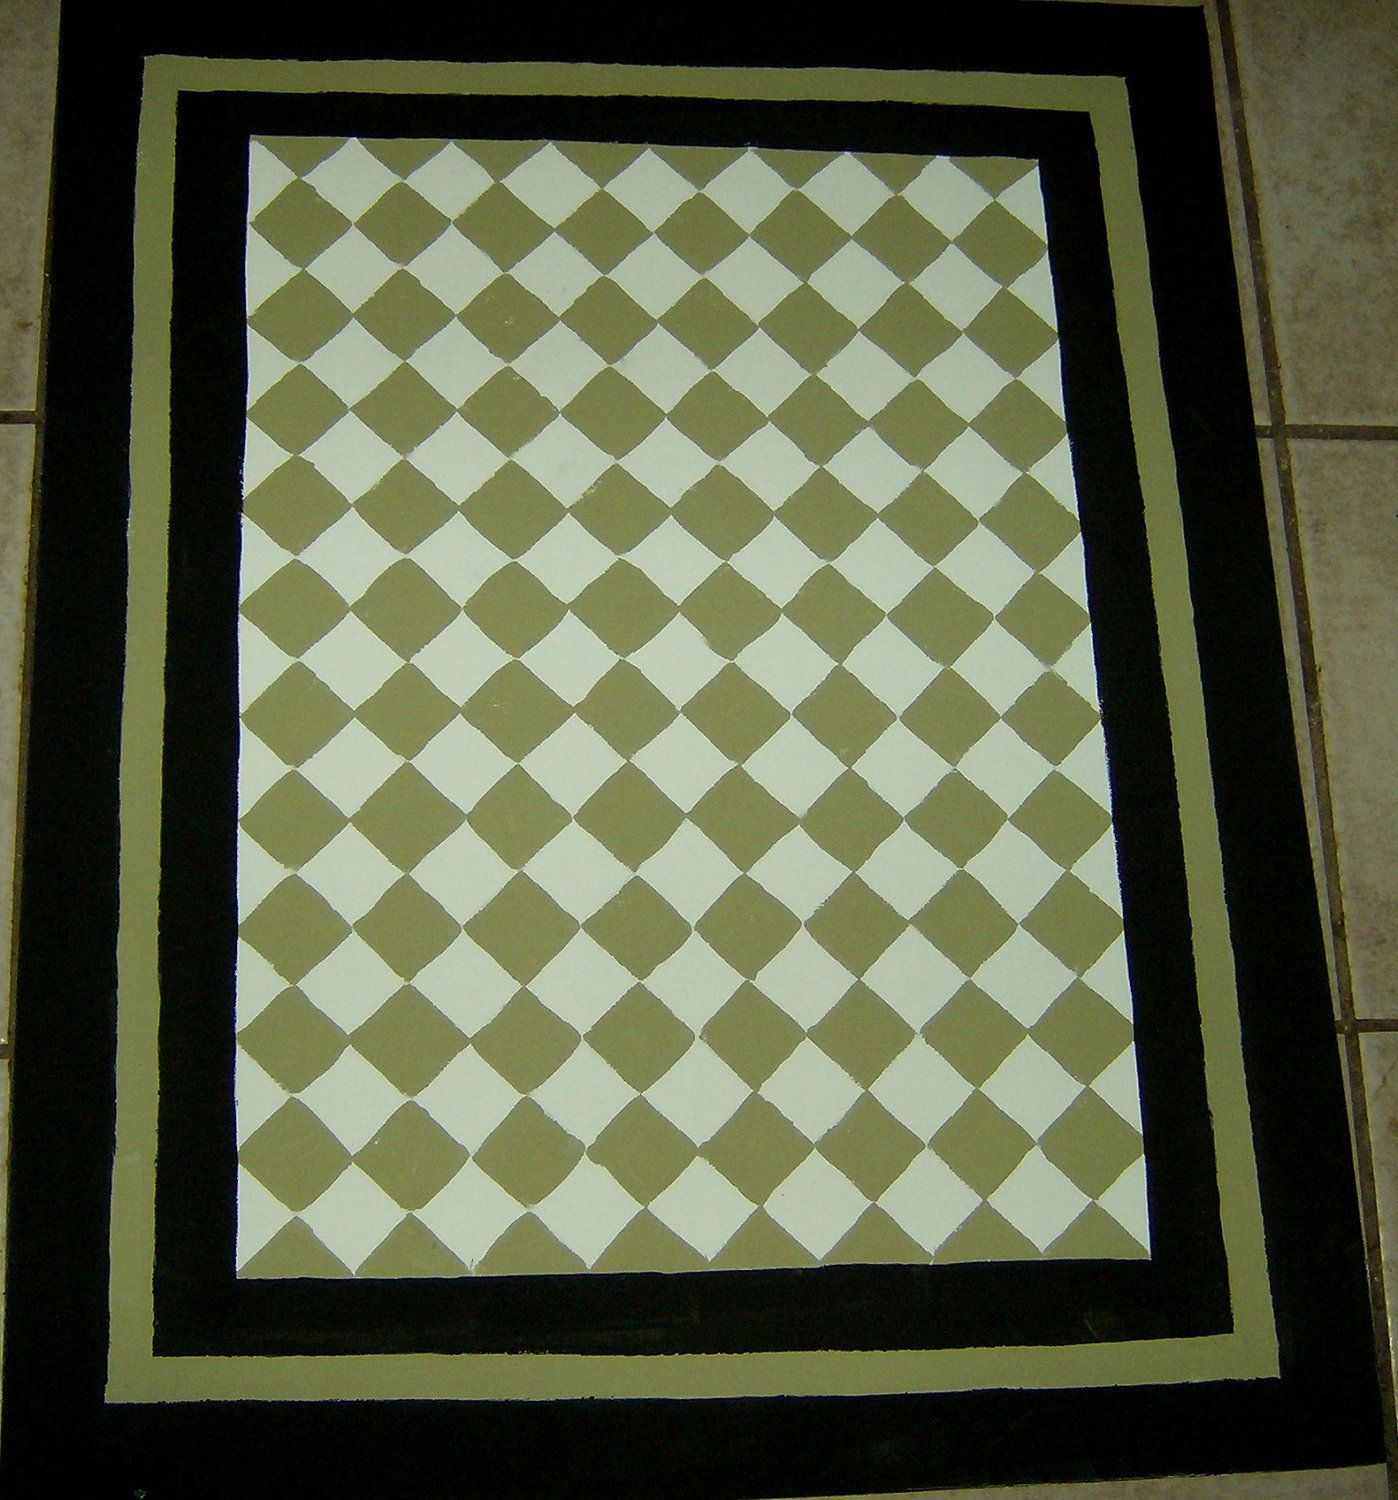 Harlequin Green Kitchen Rug Sage Green And Black Floorcloth French Country Painted Canvas